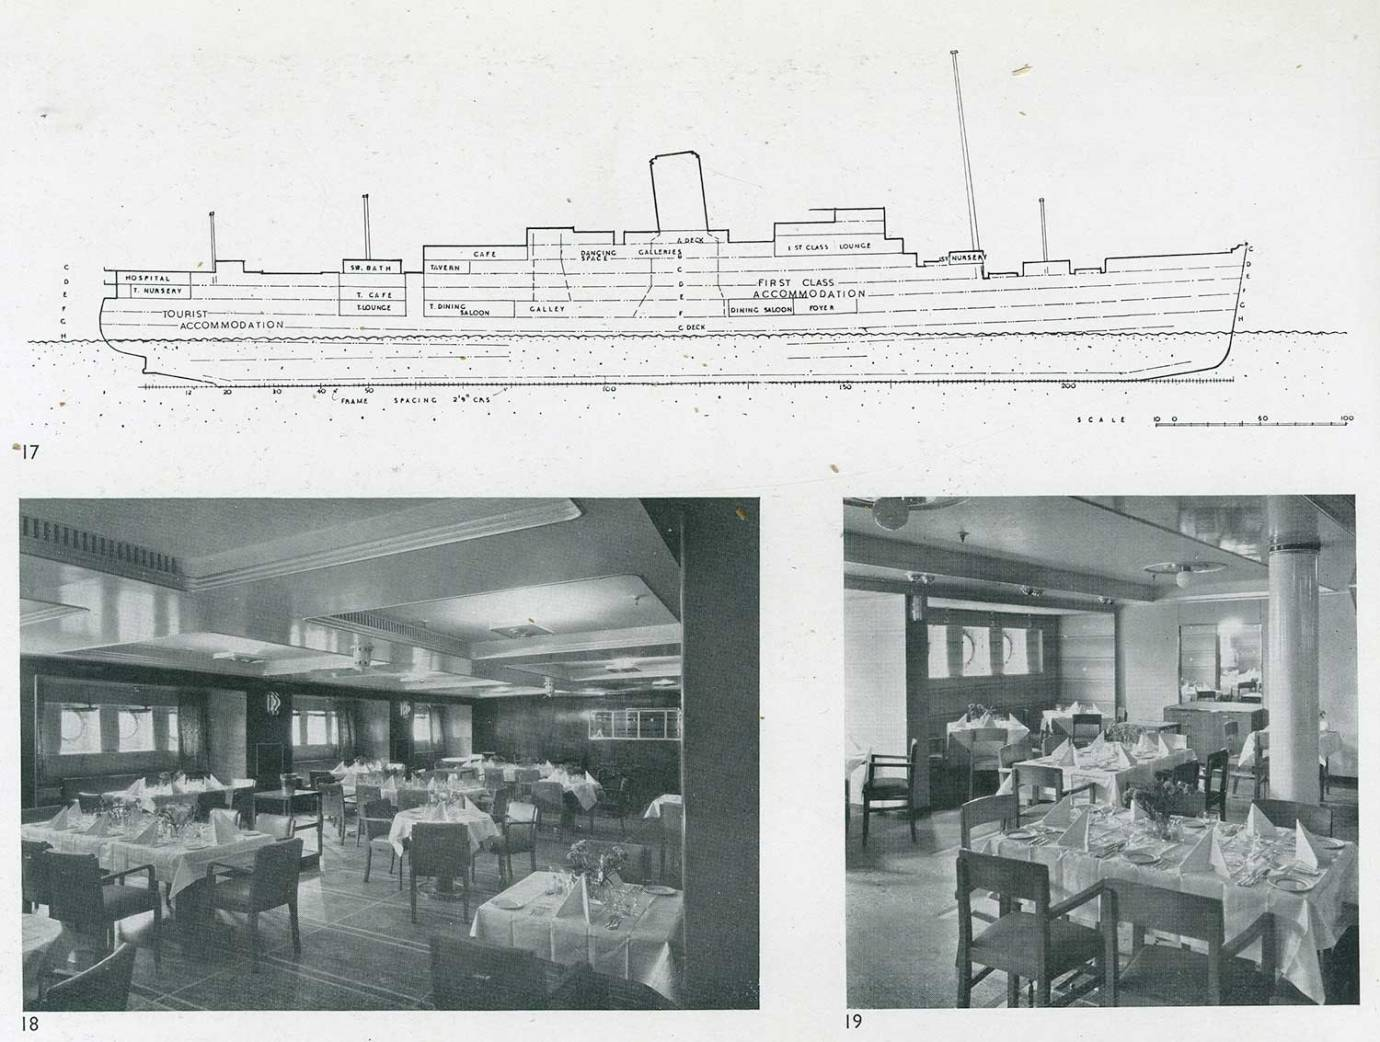 Several of O'Rorke's designs for the interior of the Orion